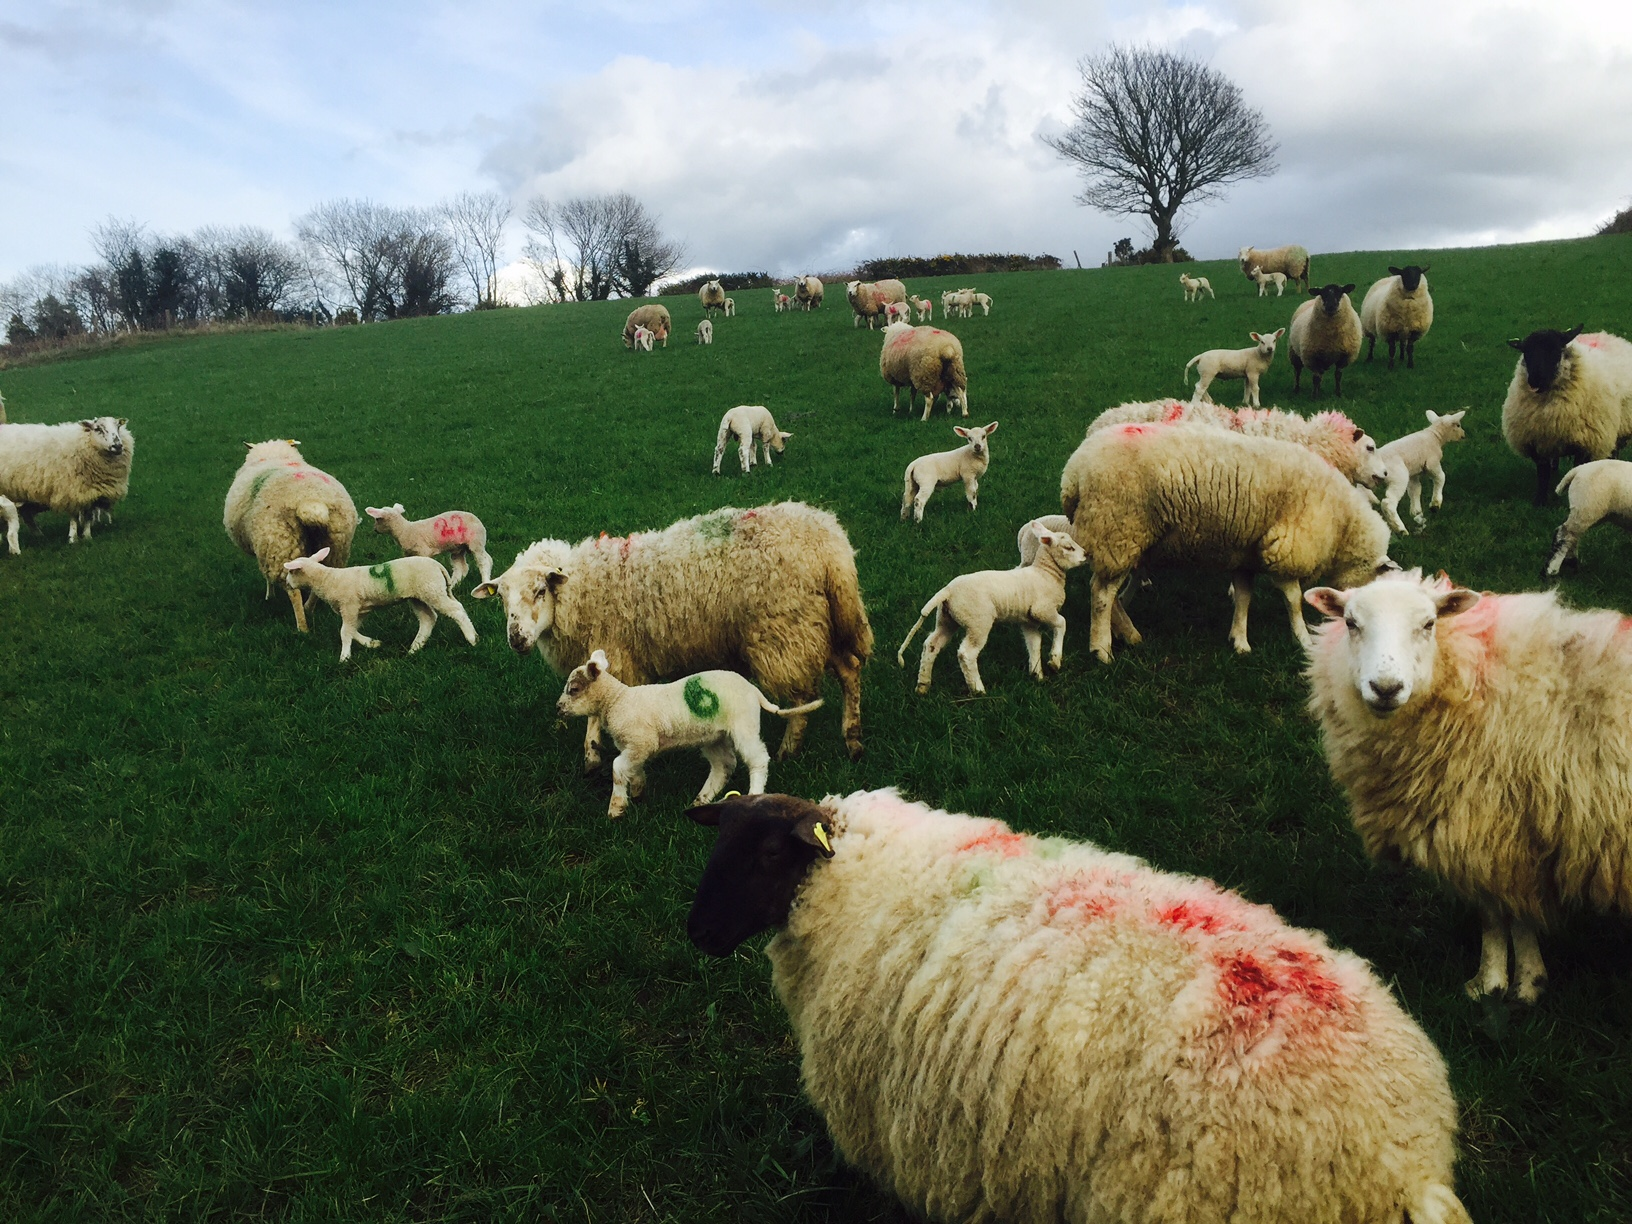 5 steps to improve lambing success on your farm - Agriland